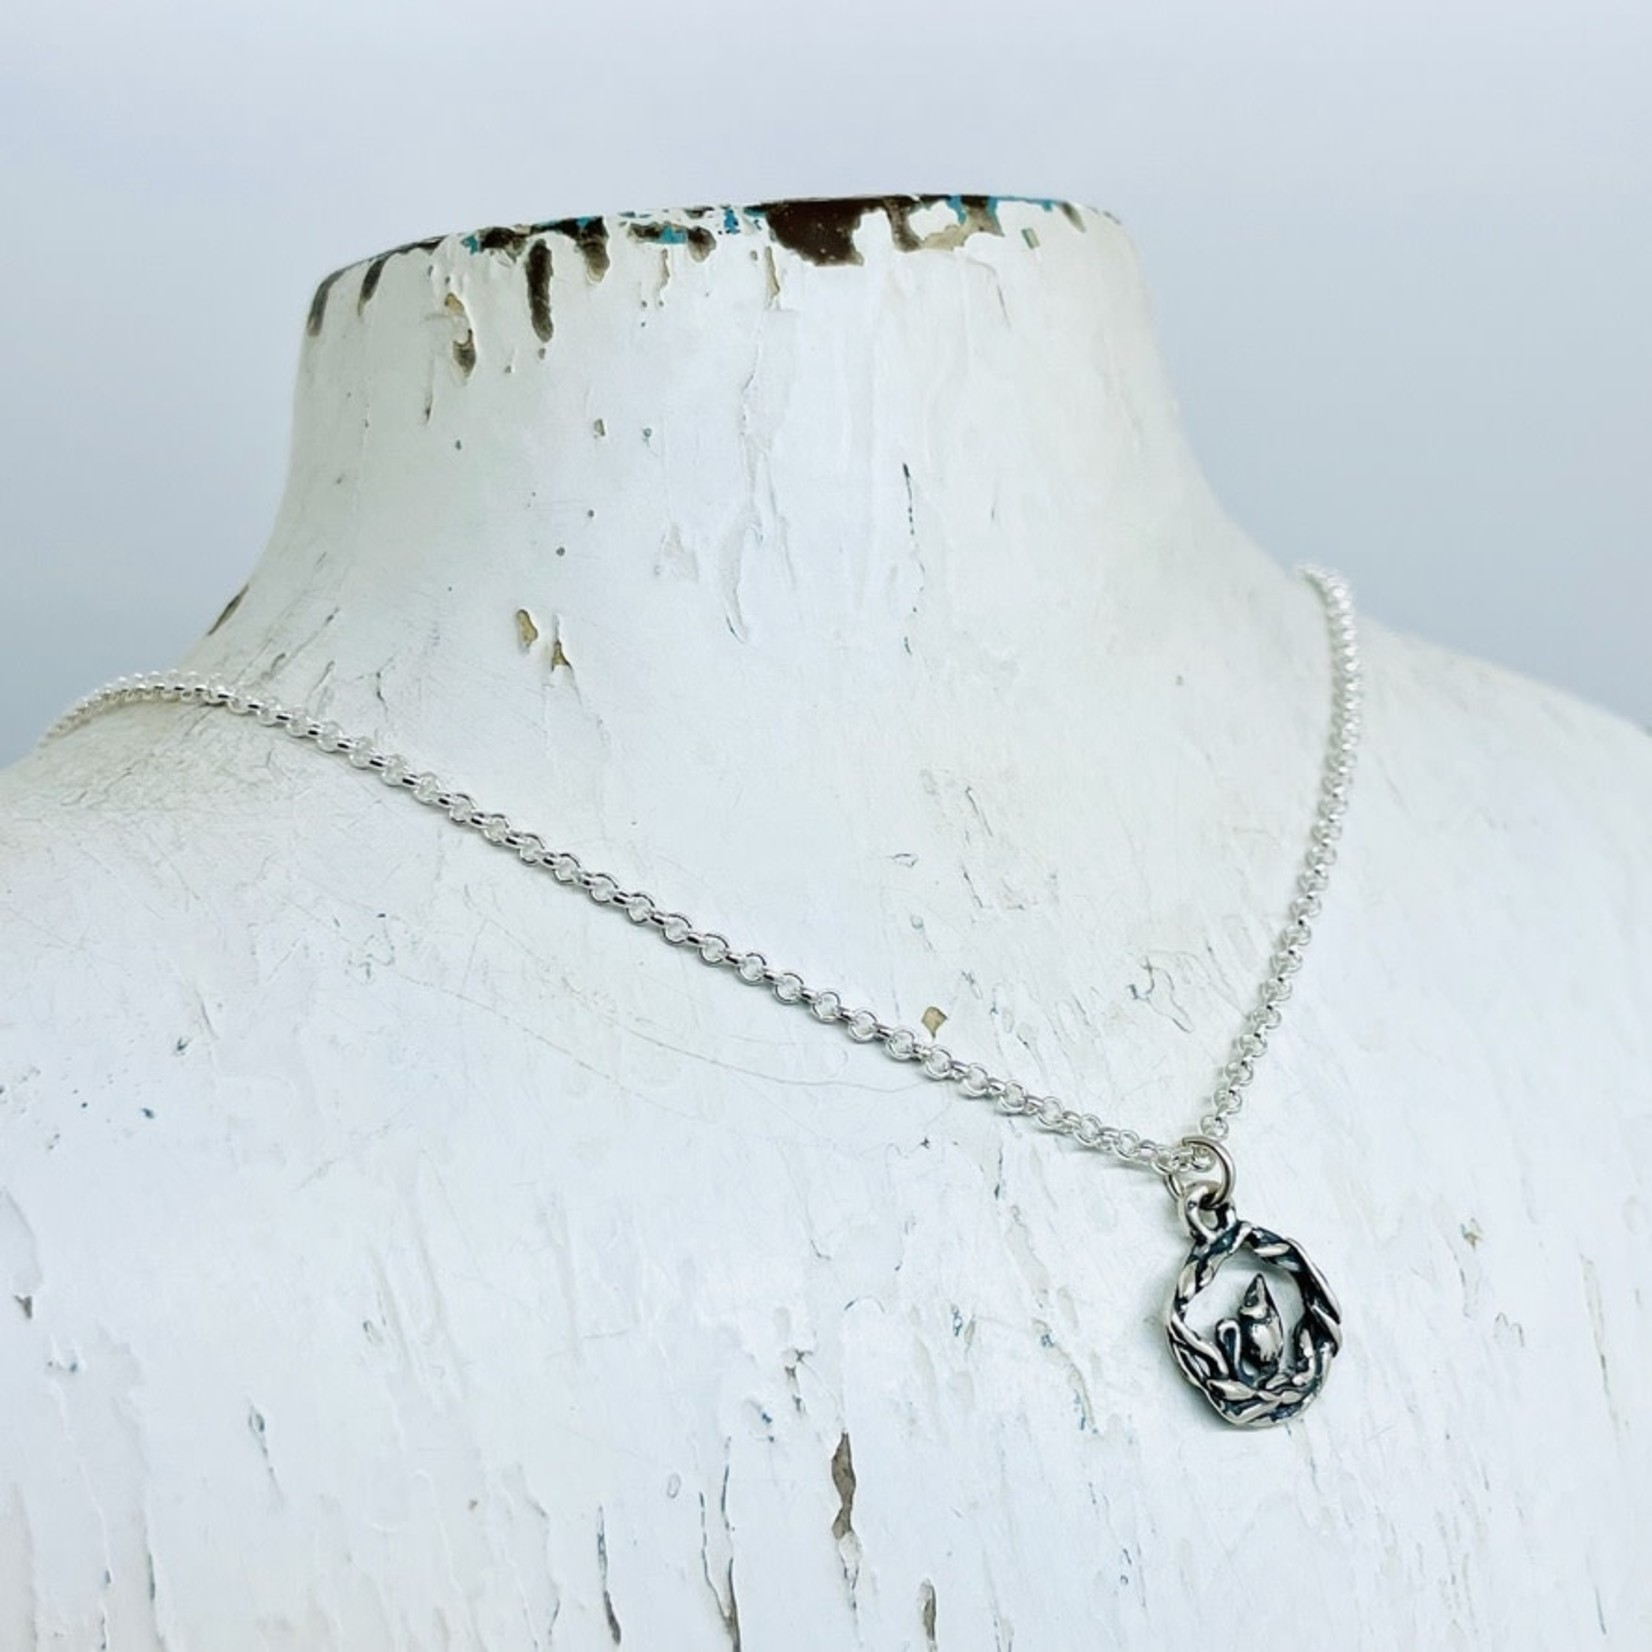 Silver Bramble Jewelry Handmade Mouse Necklace in Silver